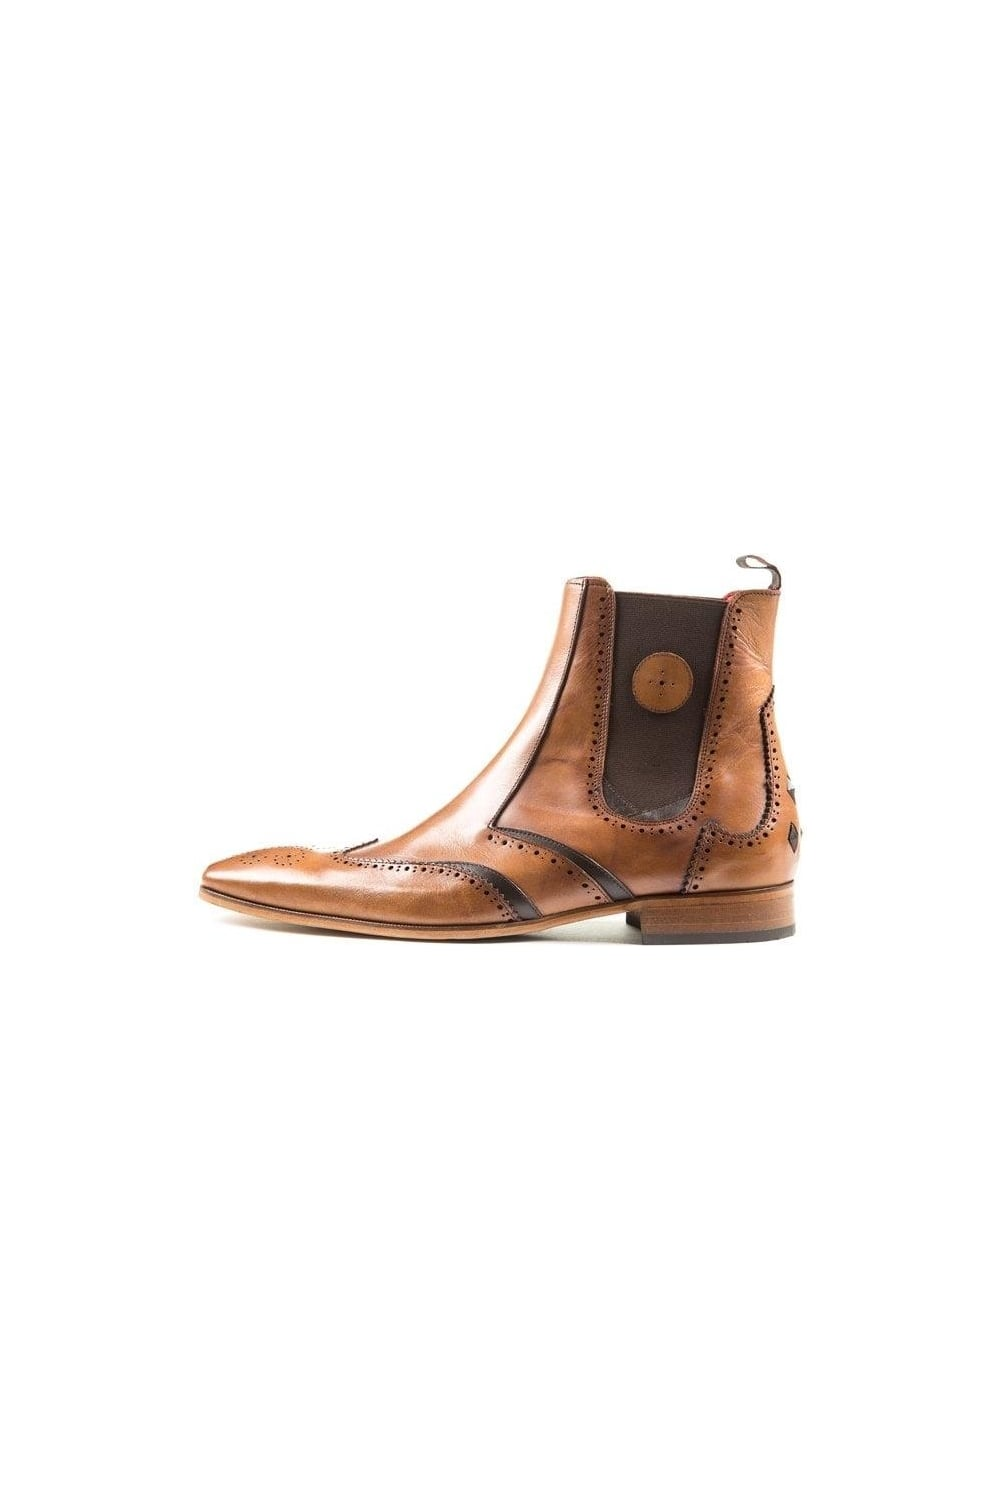 bb71536175 Jeffery West | J936 Chelsea Boots Tan | Intro Clothing